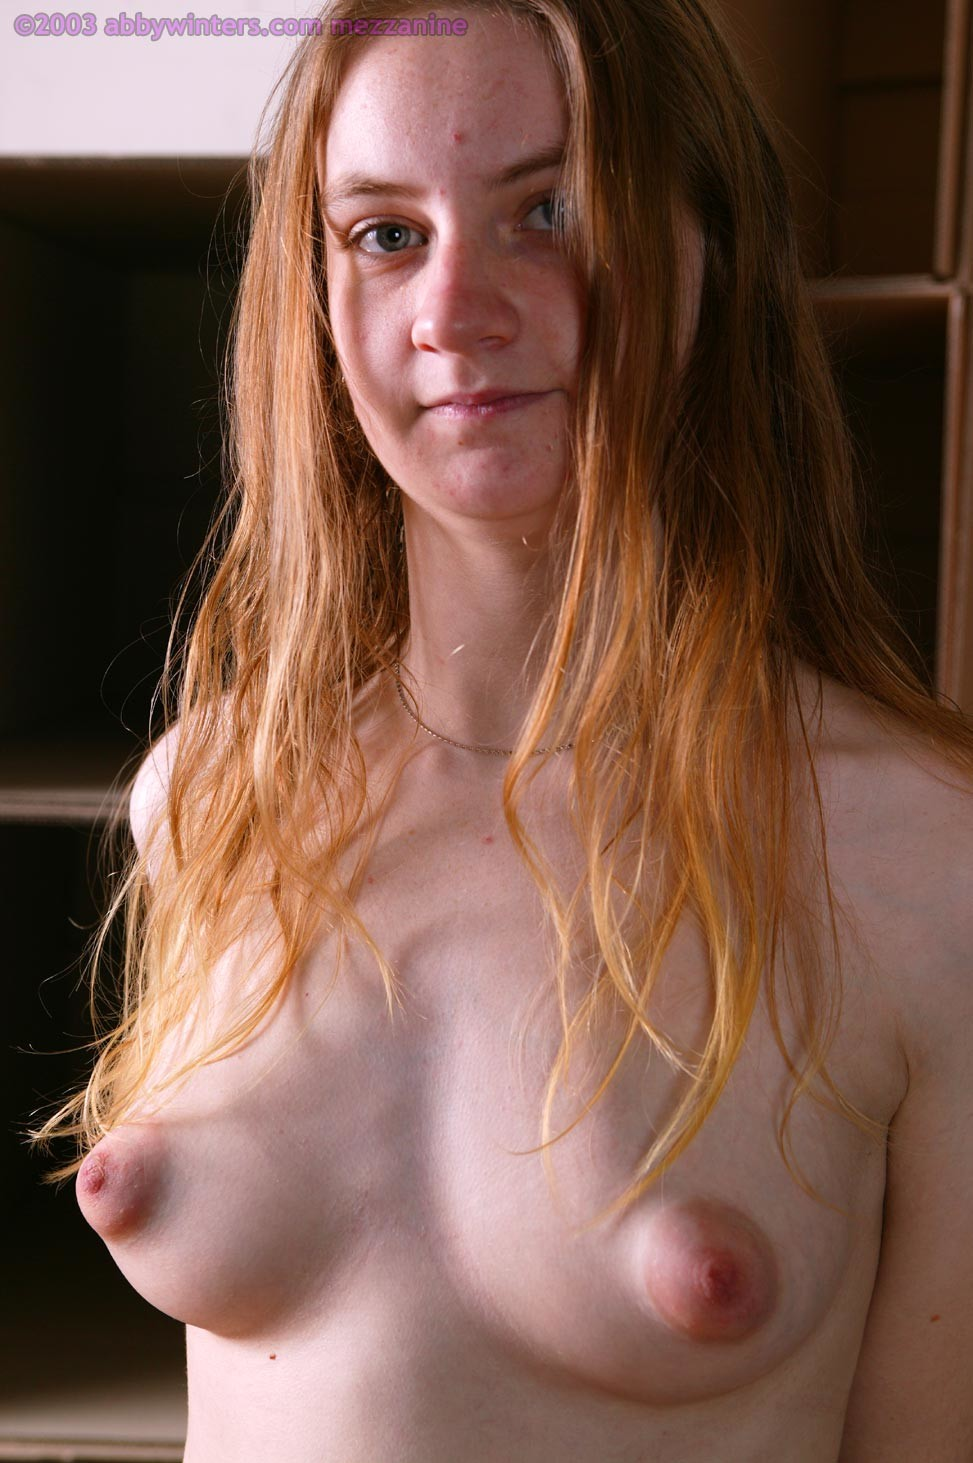 Chicks with puffy nipples